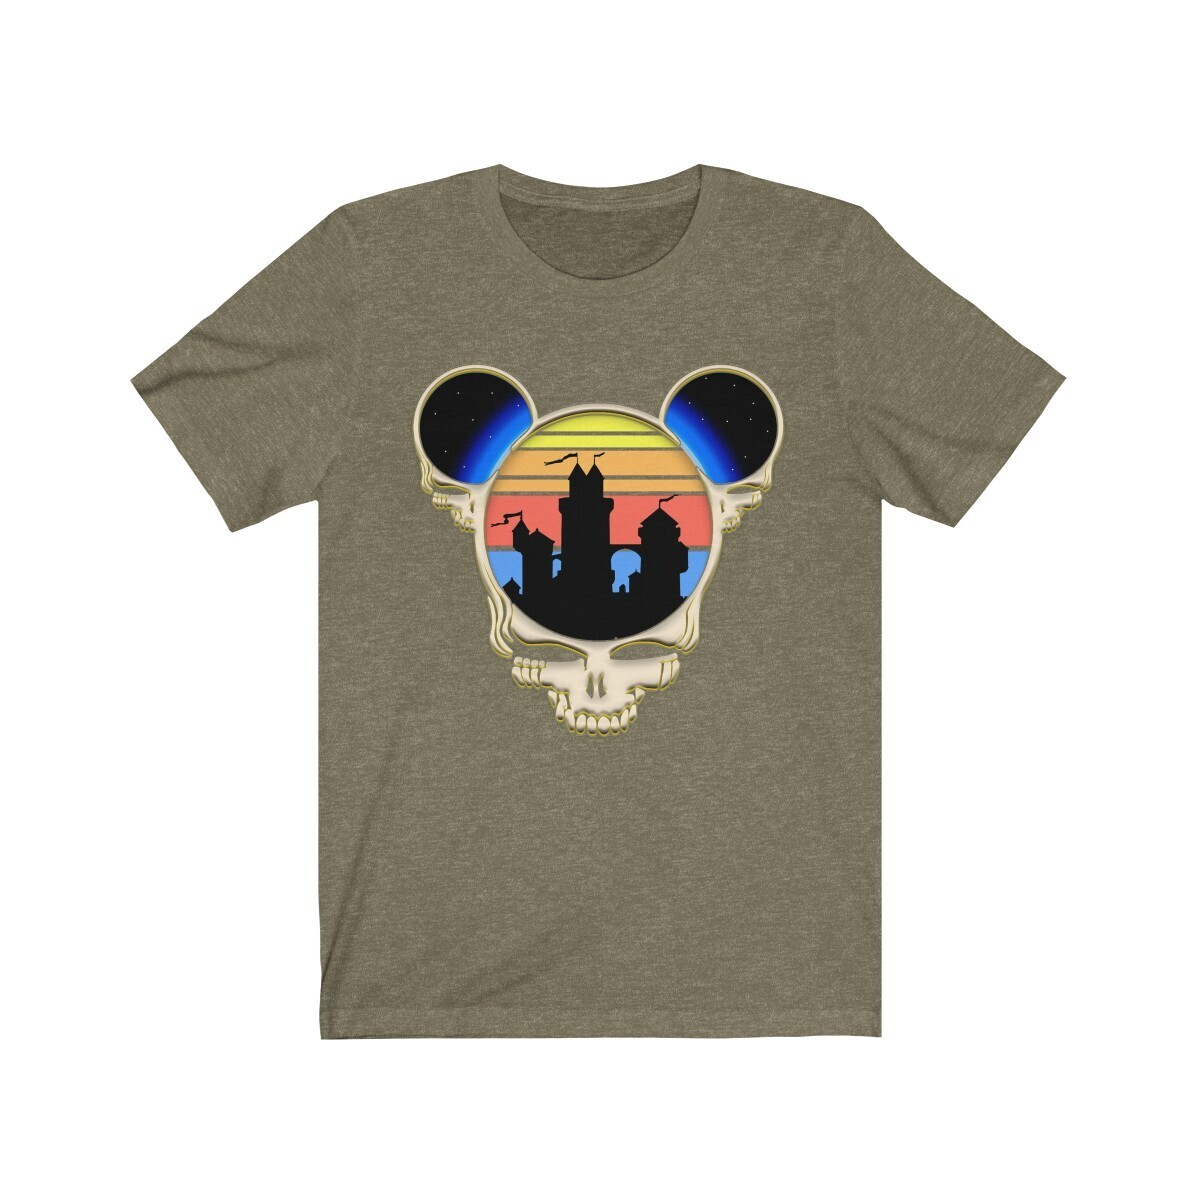 Steal Your Ears    Bella-Canvas Unisex shirt   August 2021 Light Colors